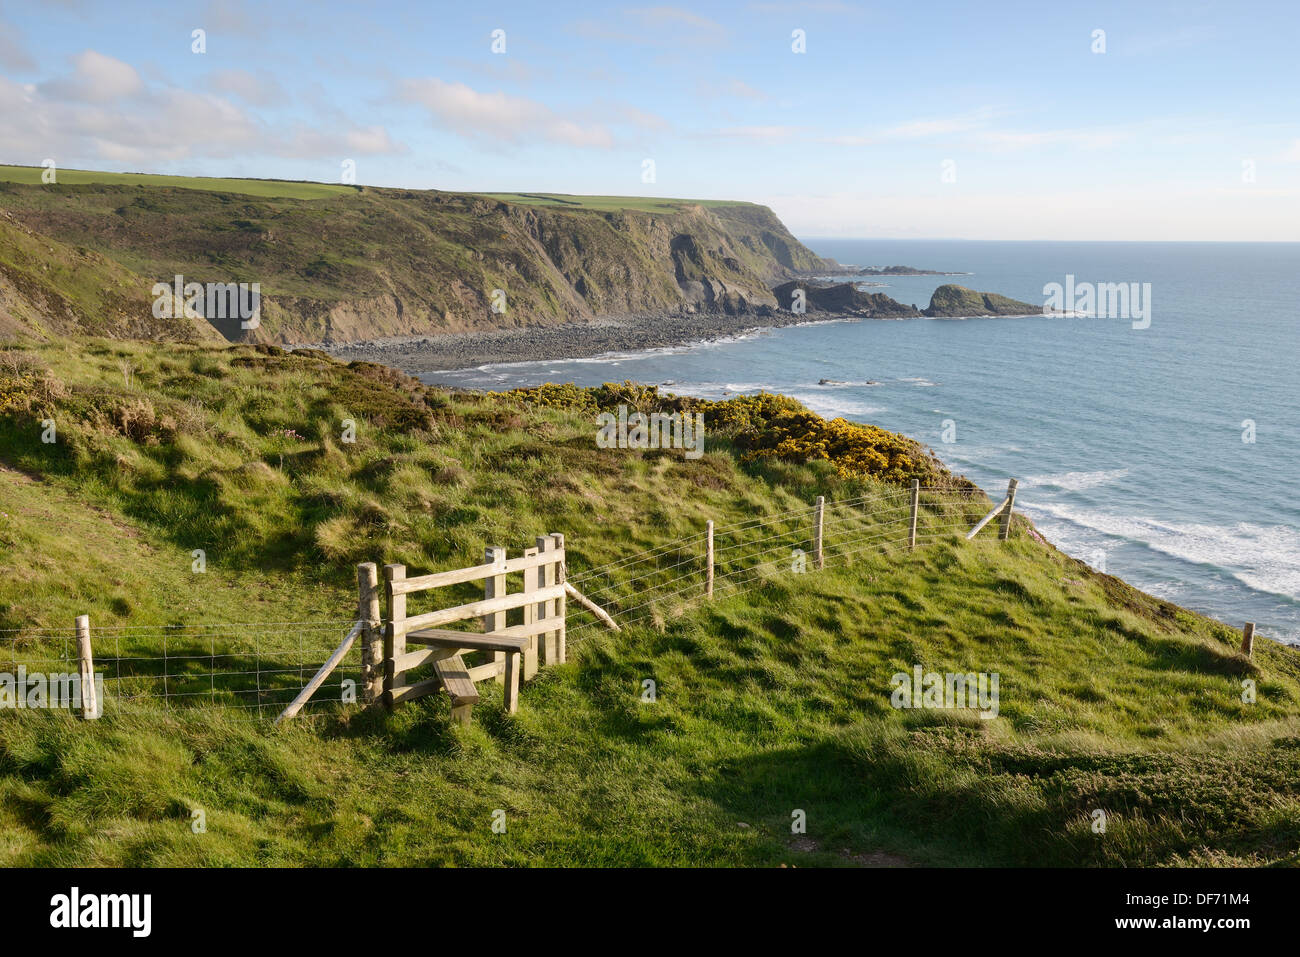 View from The Hermitage along the coastal footpath overlooking Welcombe Mouth Beach, North Devon, UK. Stock Photo